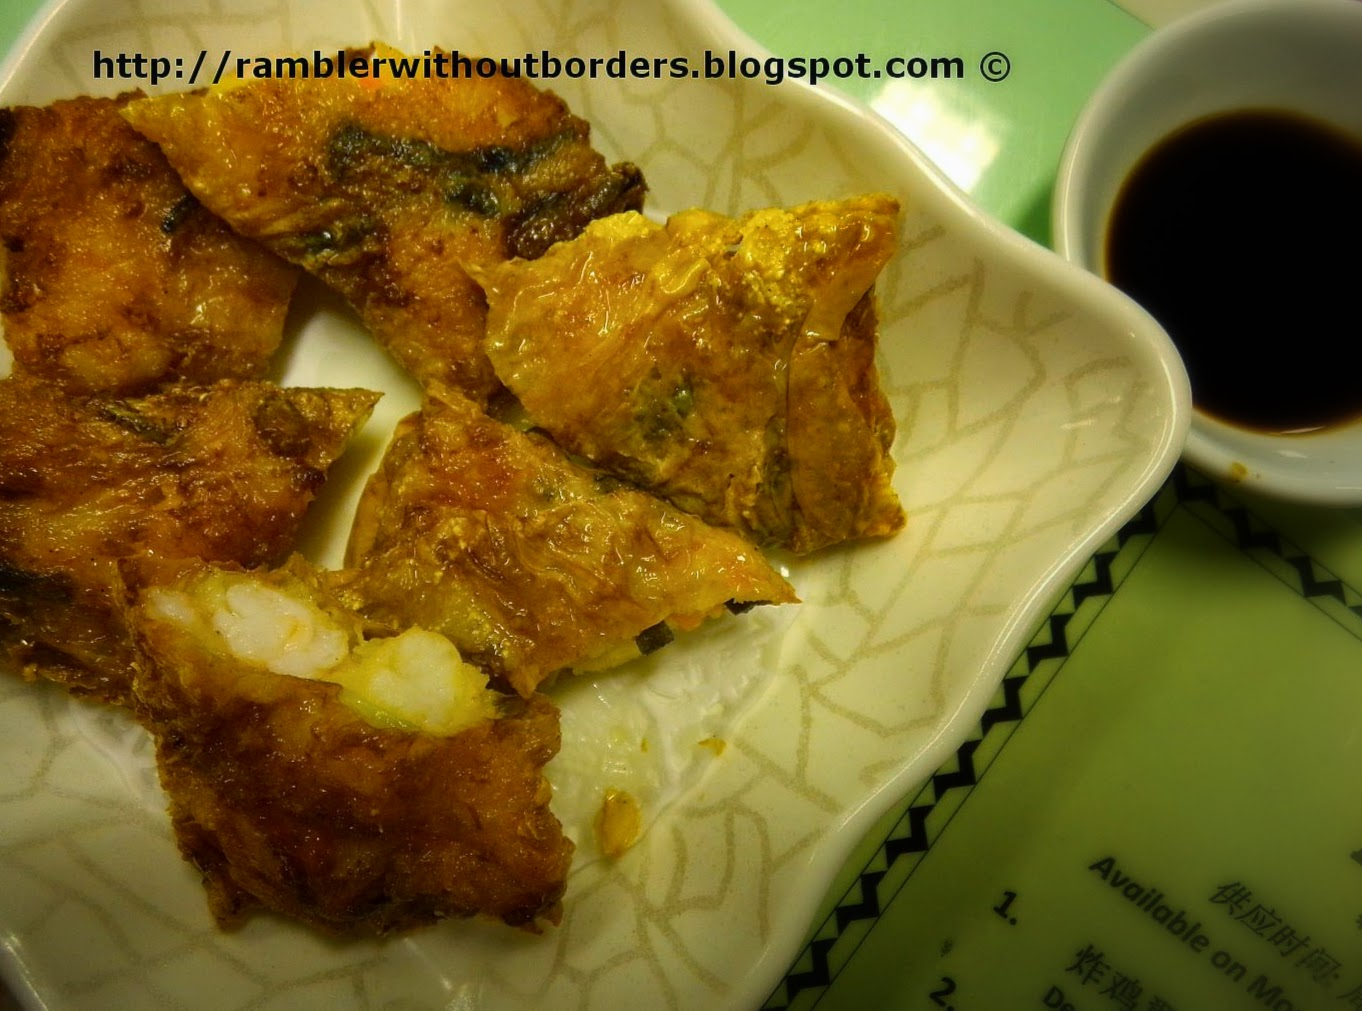 Pan-fried Beancurd Skin Roll Stuffed with Shrimp (鲜虾腐皮卷)